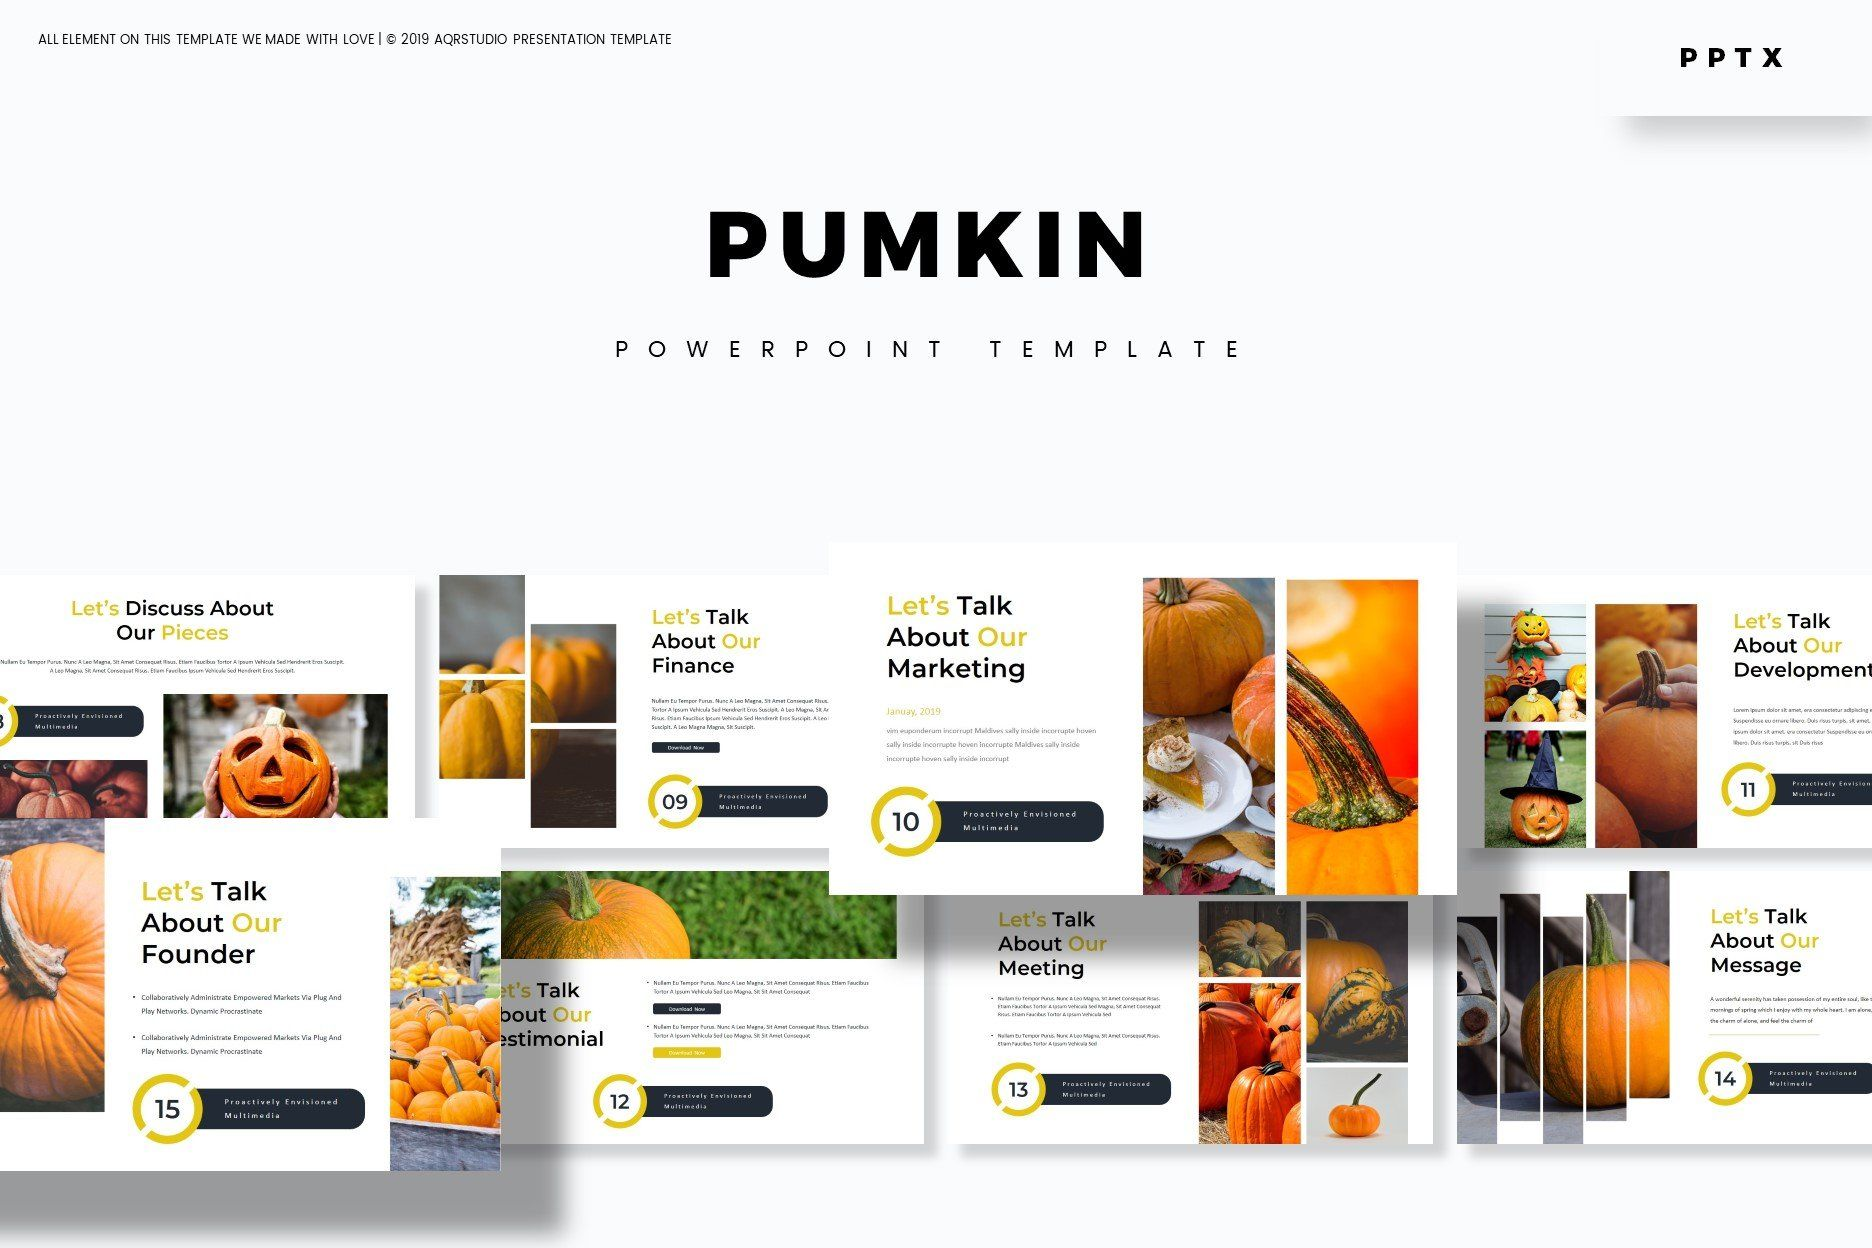 Pumpkin Powerpoint Template By Aqr Studio On